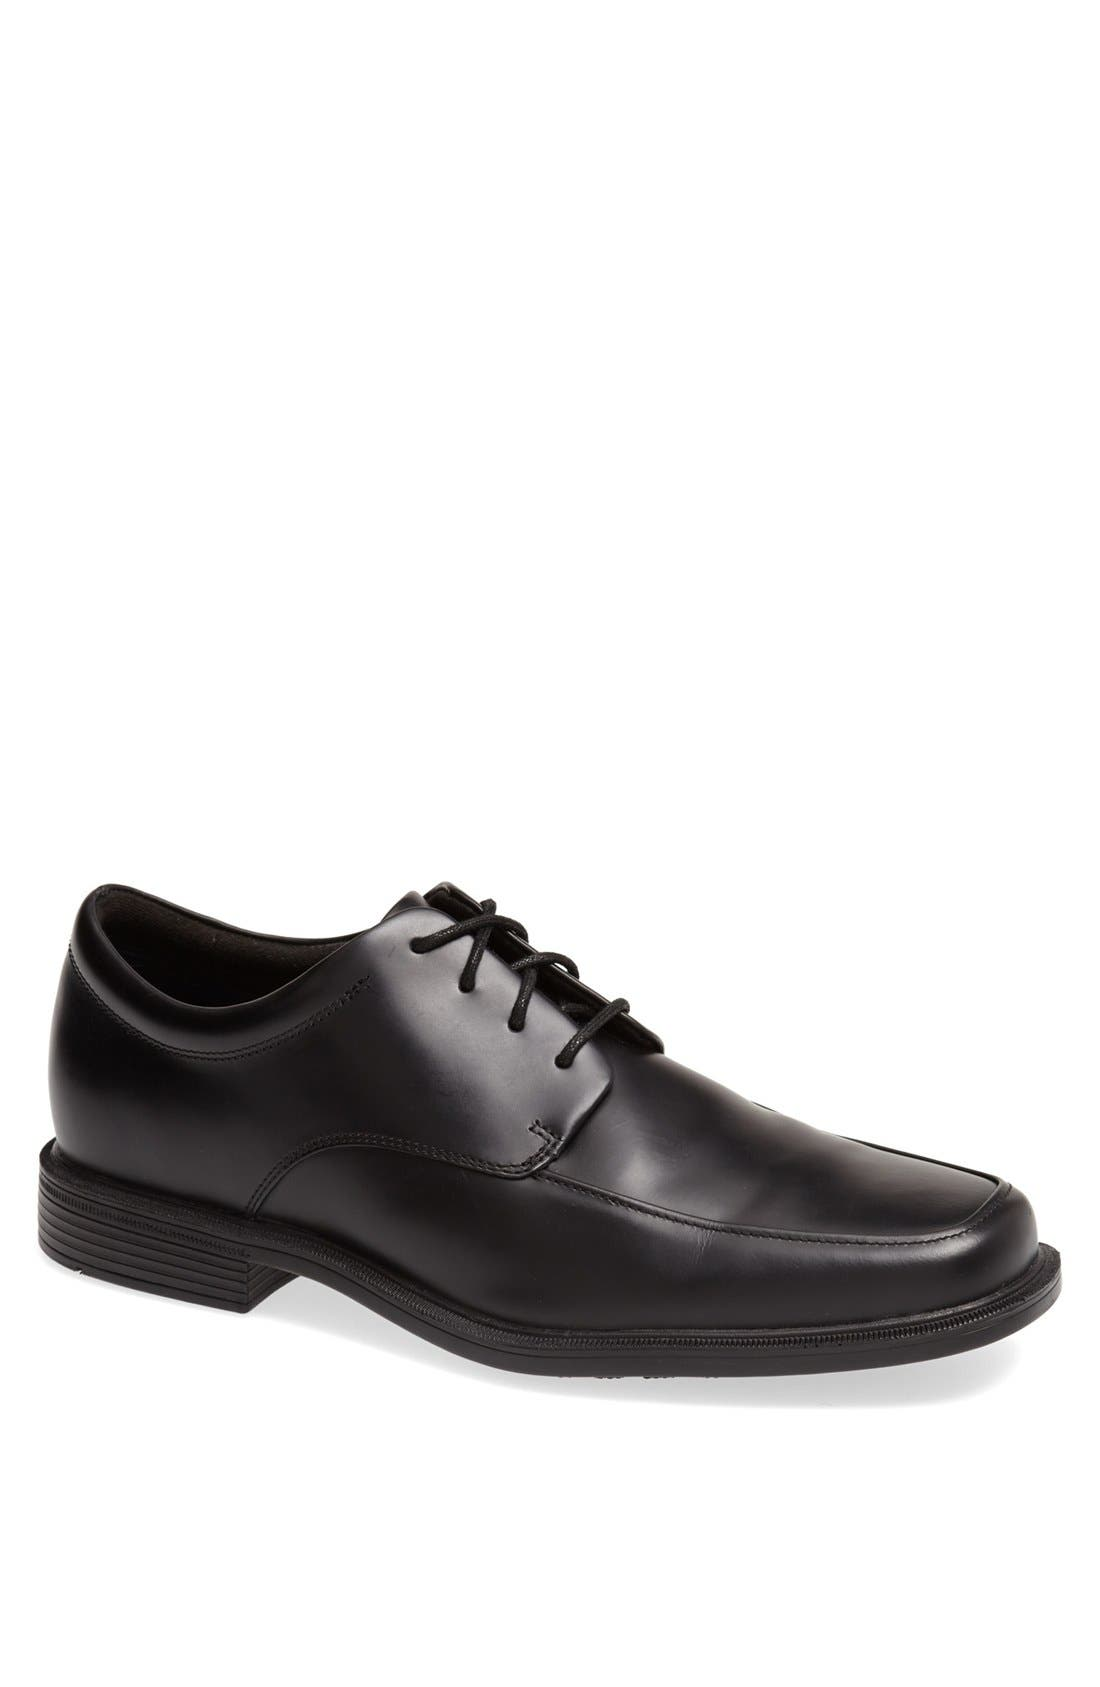 Rockport 'Evander' Oxford